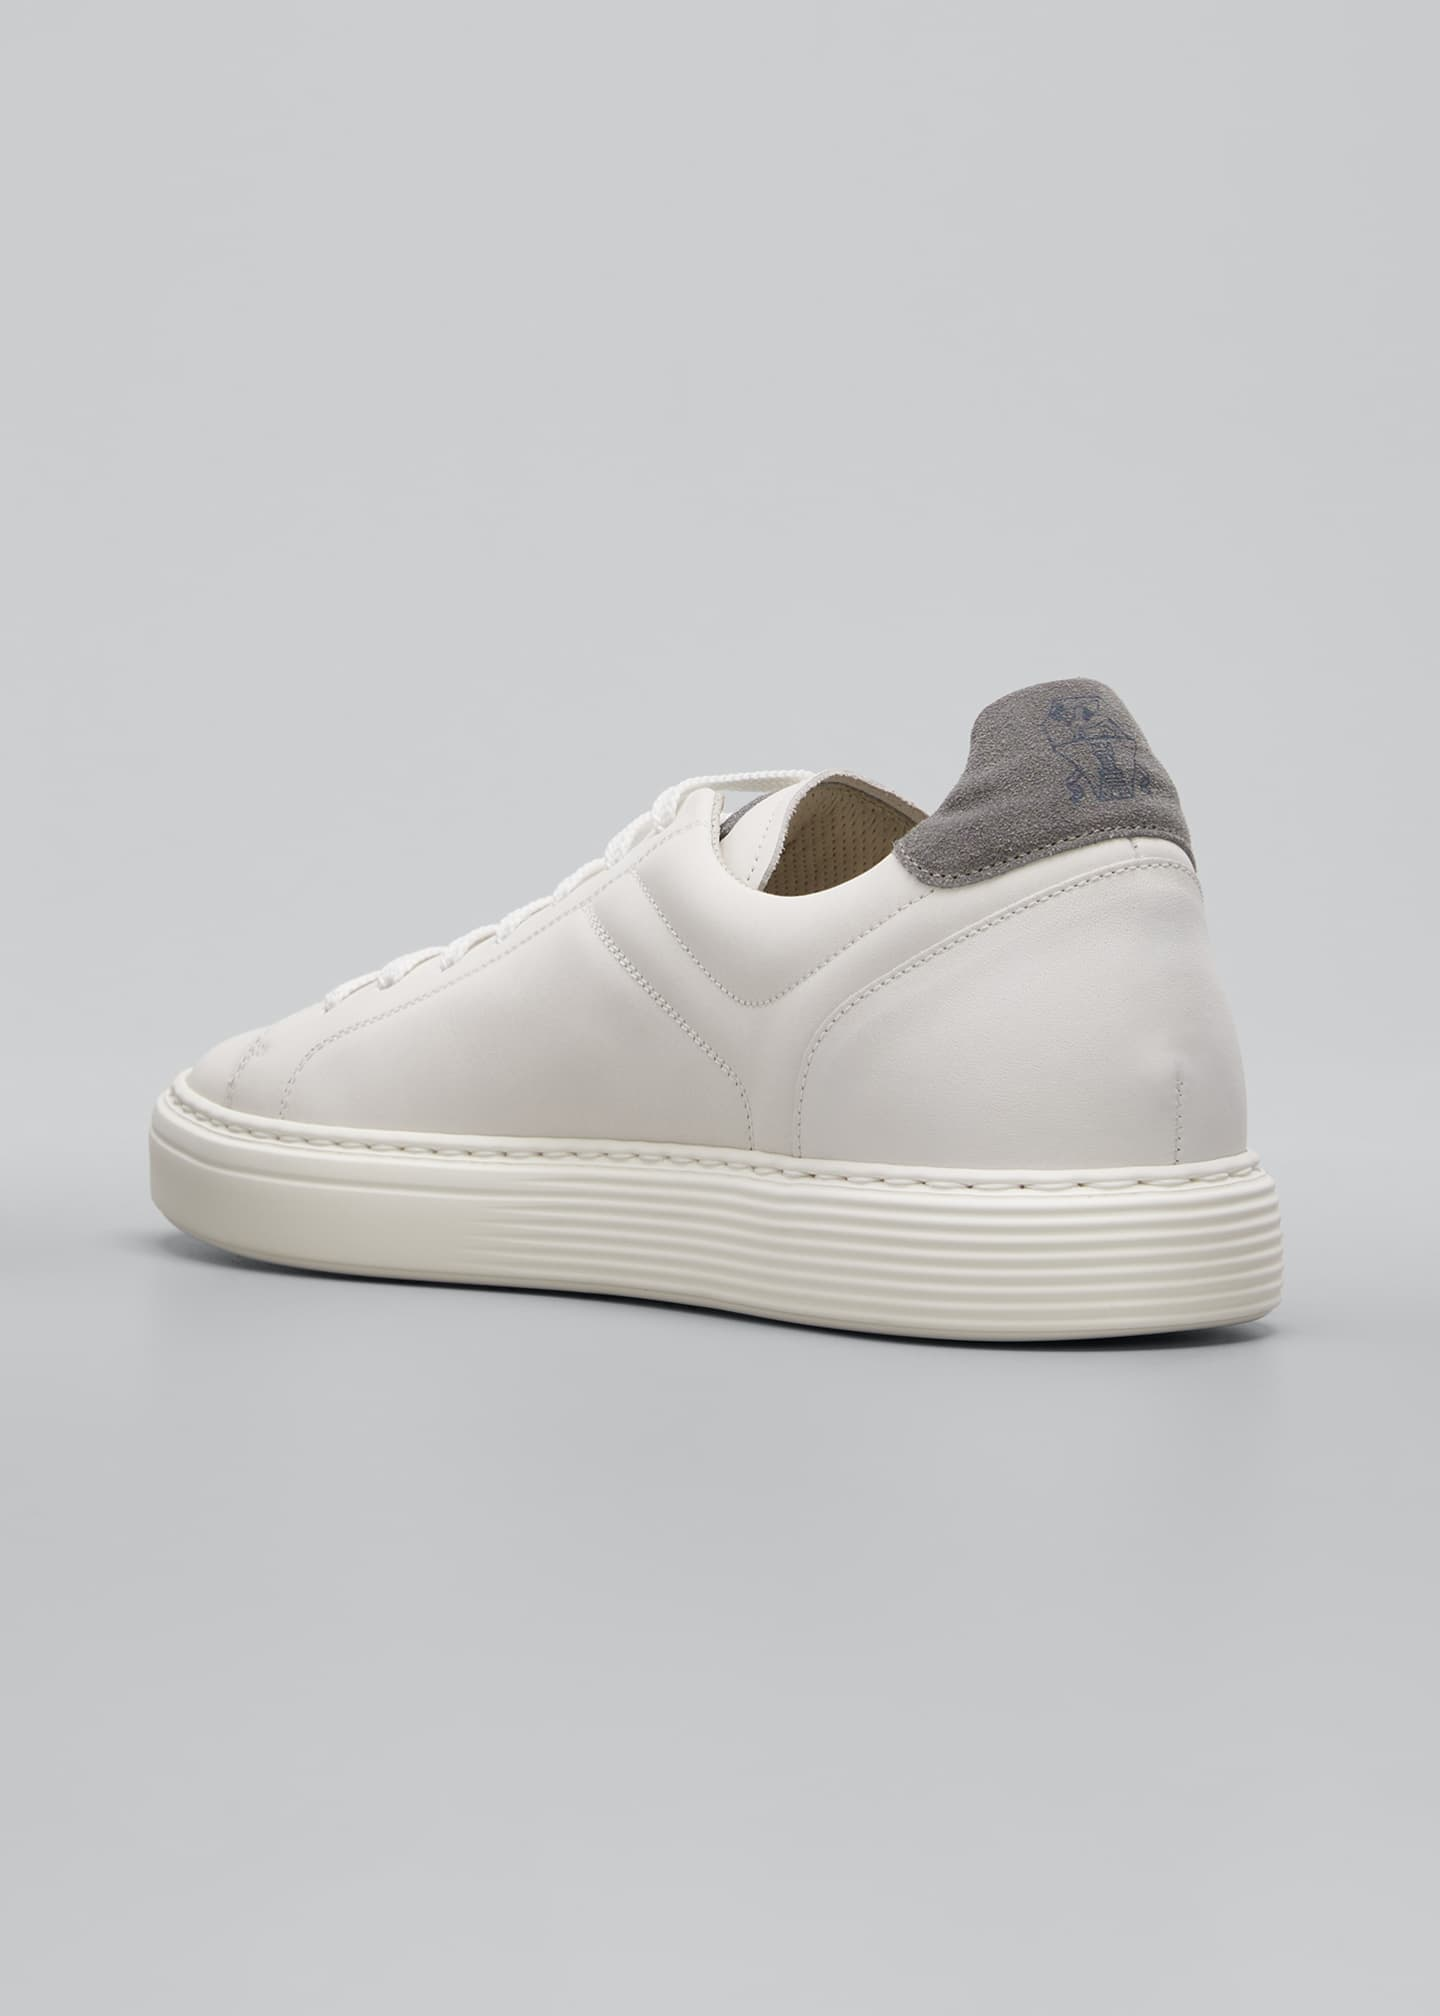 Image 2 of 3: Men's Leather Cup-Sole Low-Top Sneakers